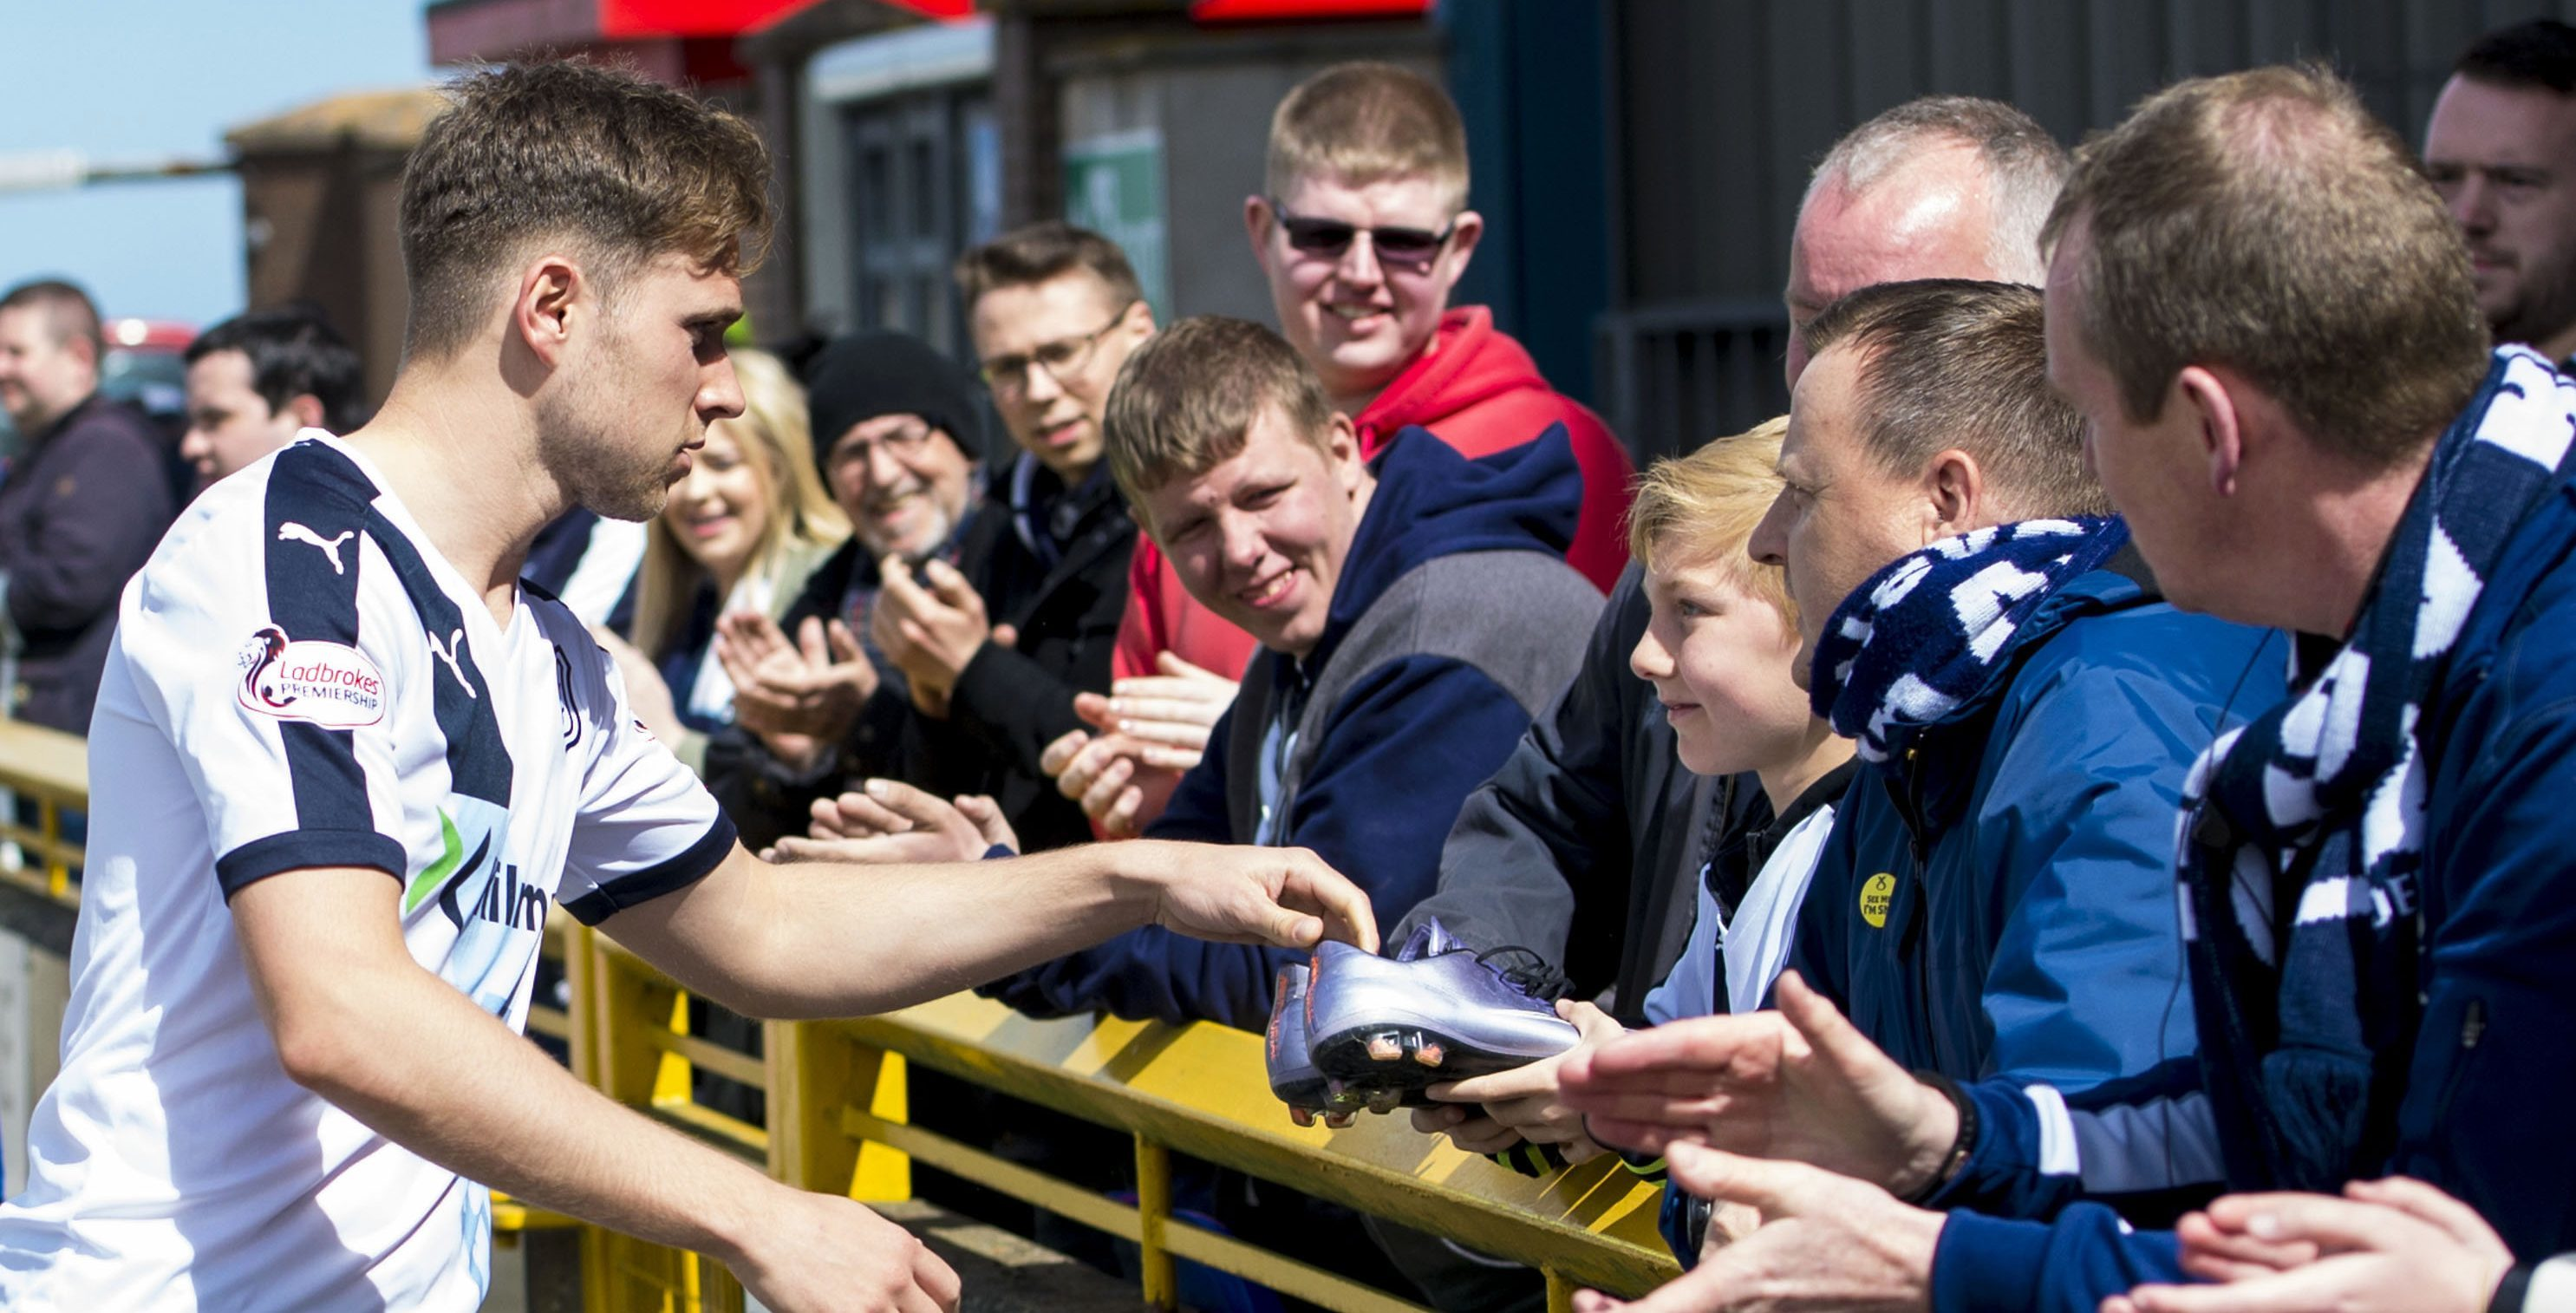 Greg Stewart giving his boots to a Dundee fan at the end of their last game of the season at Inverness on Saturday.